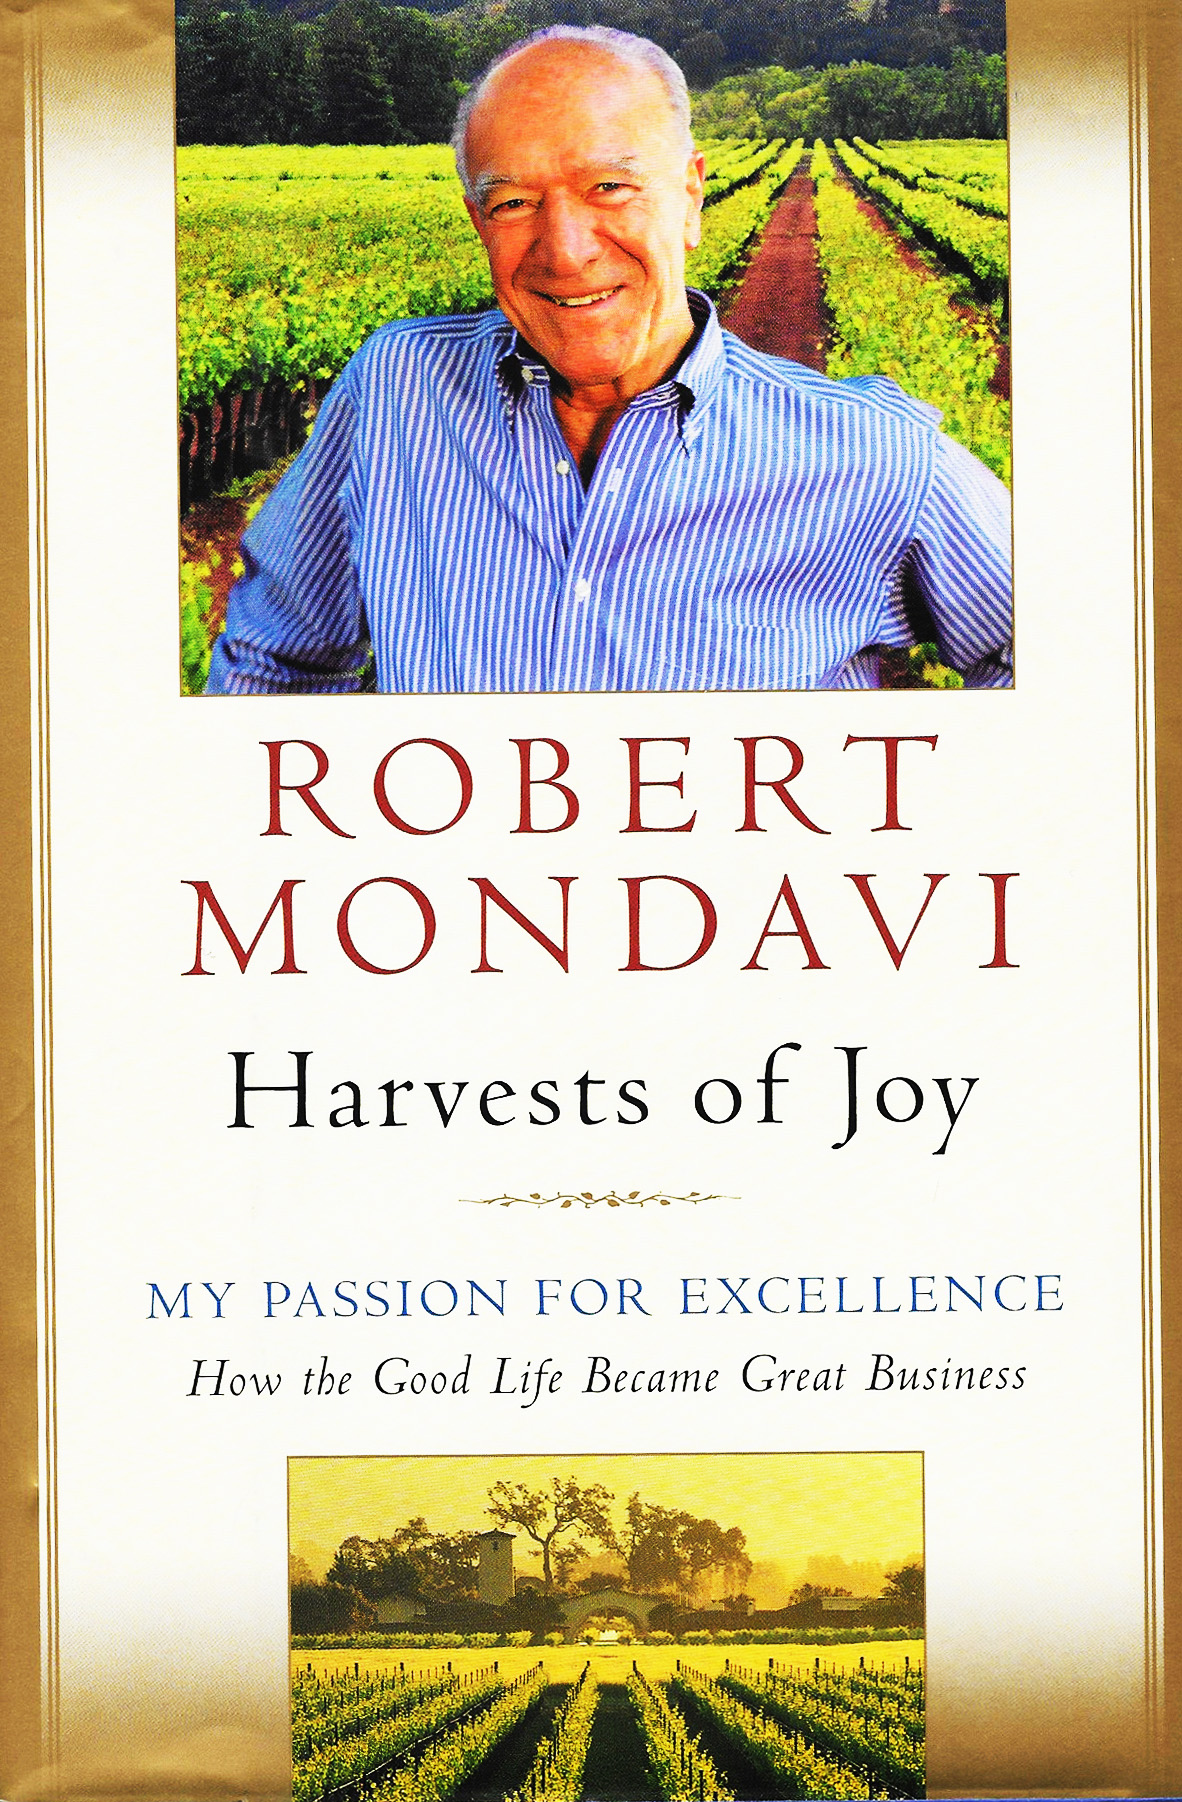 """Beyond being a great read, """"Harvests of Joy"""" brought us more than a million dollars in free publicity. Everybody wrote about it! - - Harvey Posert, former PR director at Robert Mondavi Winery"""